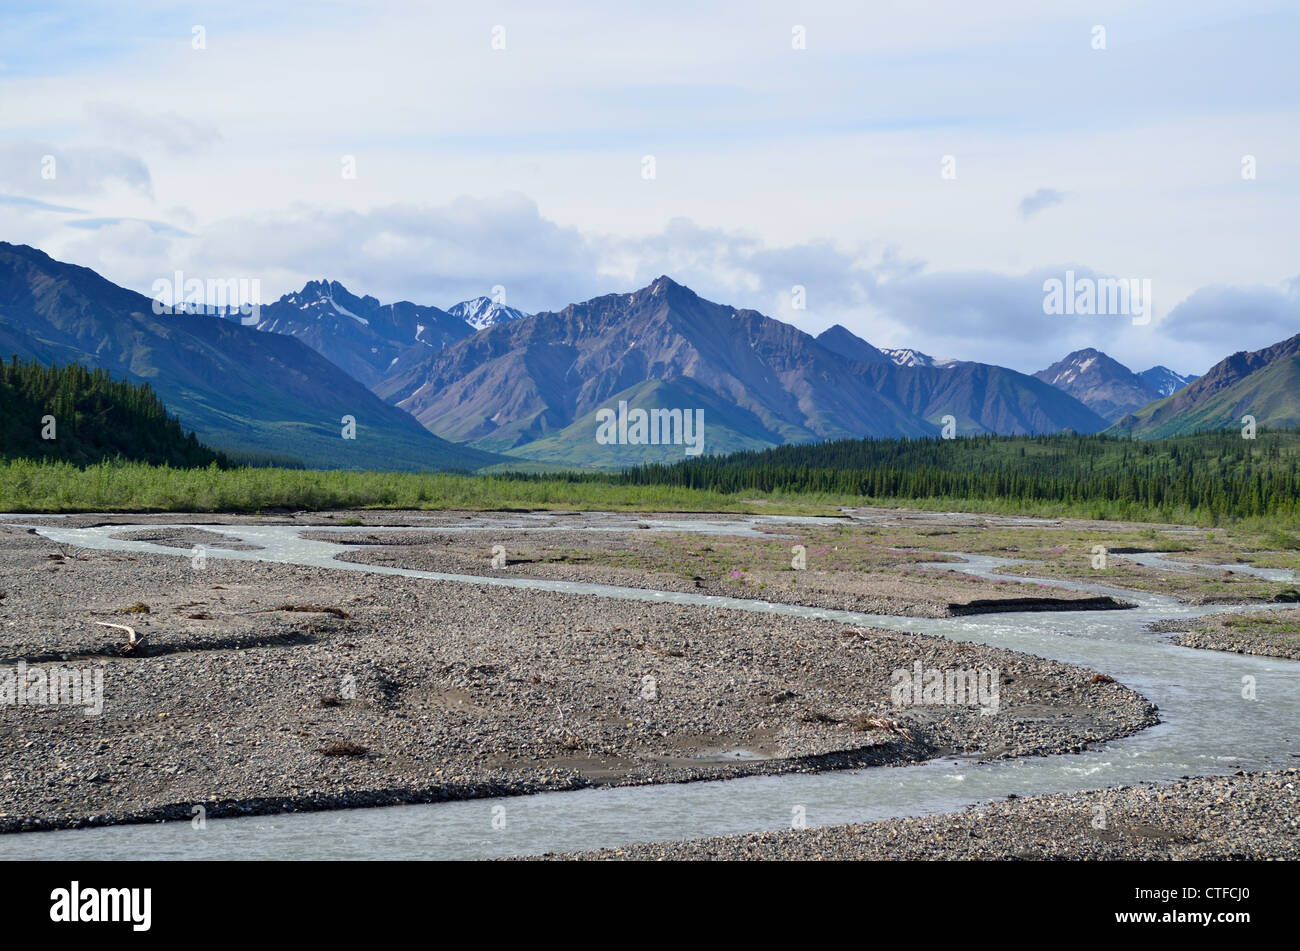 Mountains and rivers at the Denali National Park and Wildness Preserve. Alaska, USA. - Stock Image